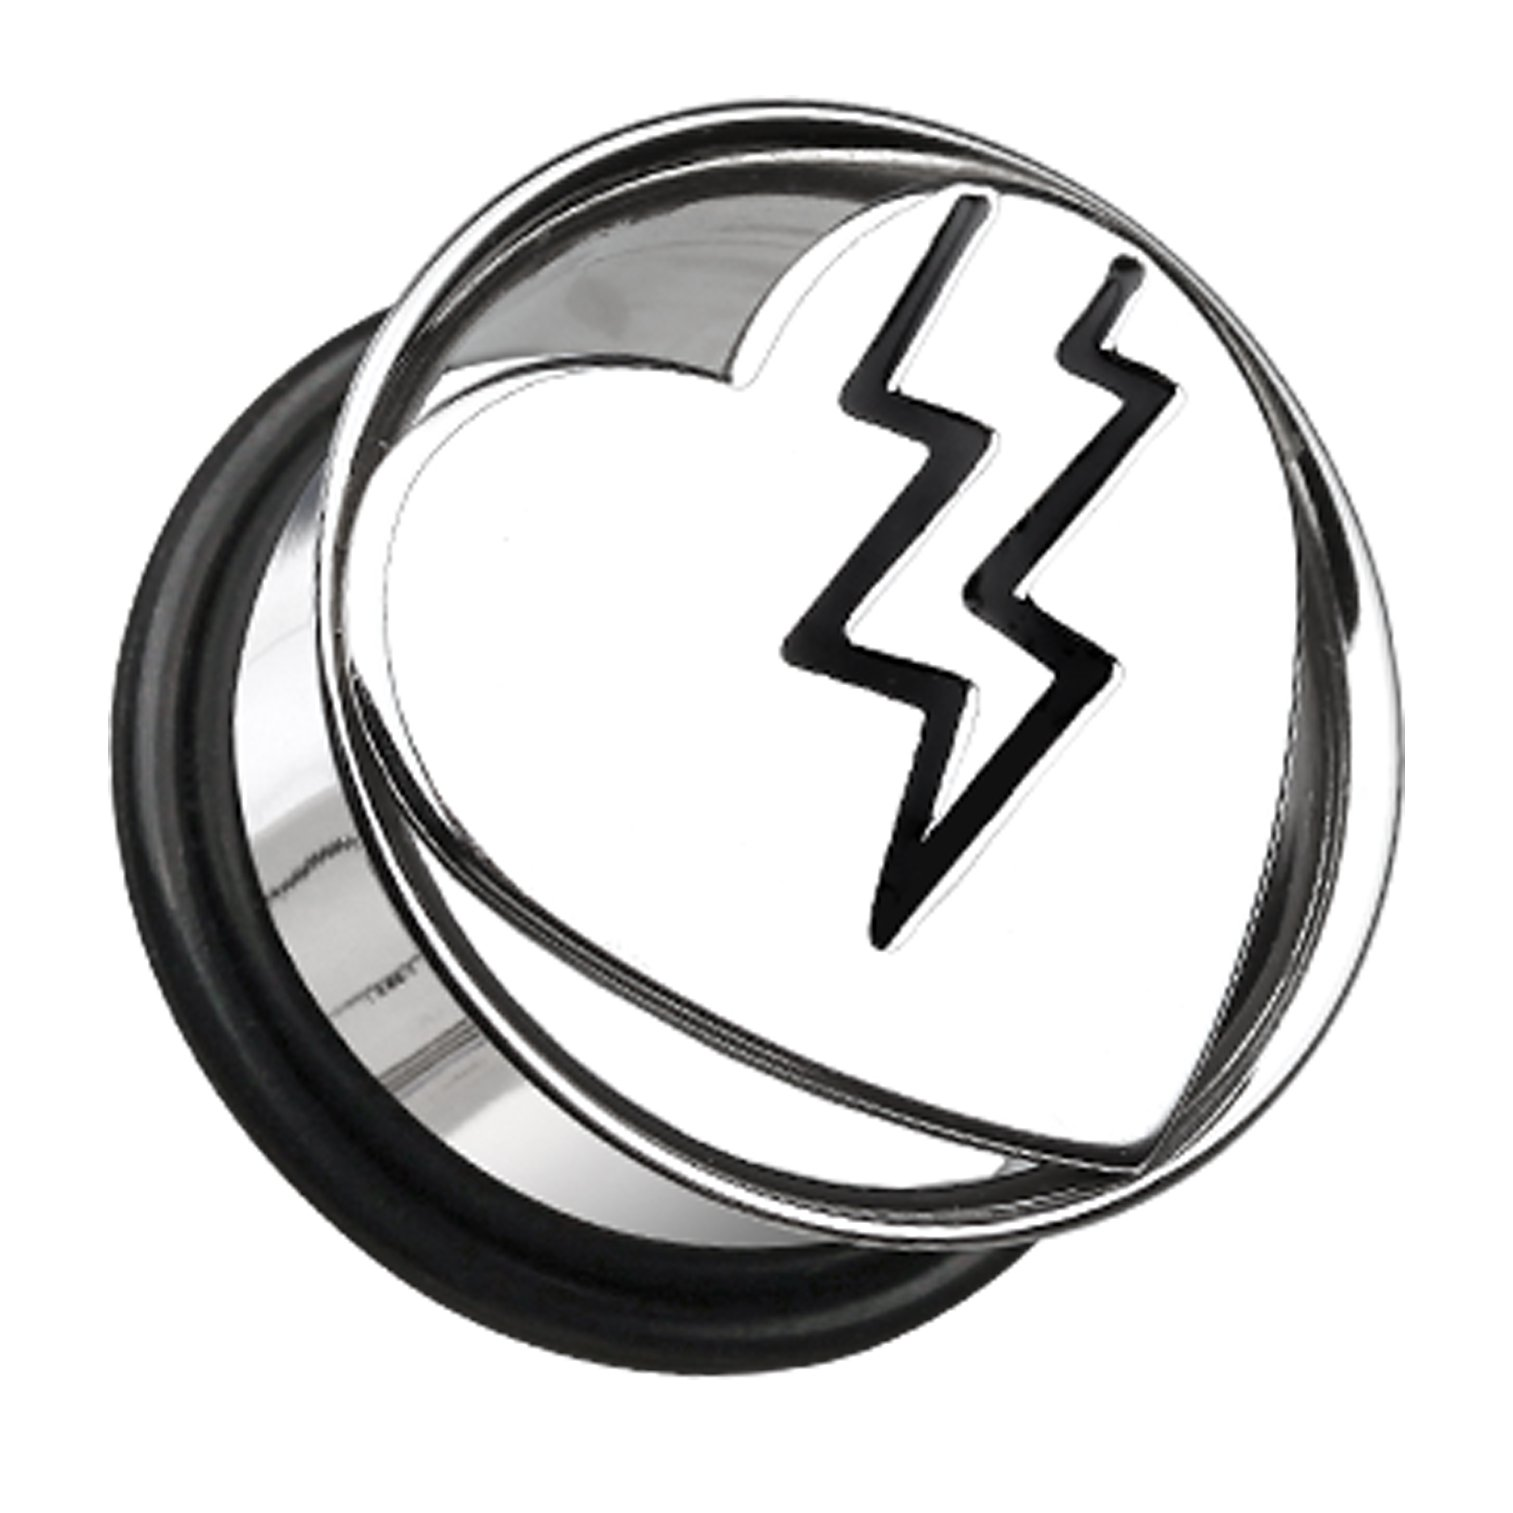 Lightning Bolt Heart Hollow 316L Surgical Steel Single Flared Ear Gauge Plug - 1'' (25mm) - Sold as a Pair